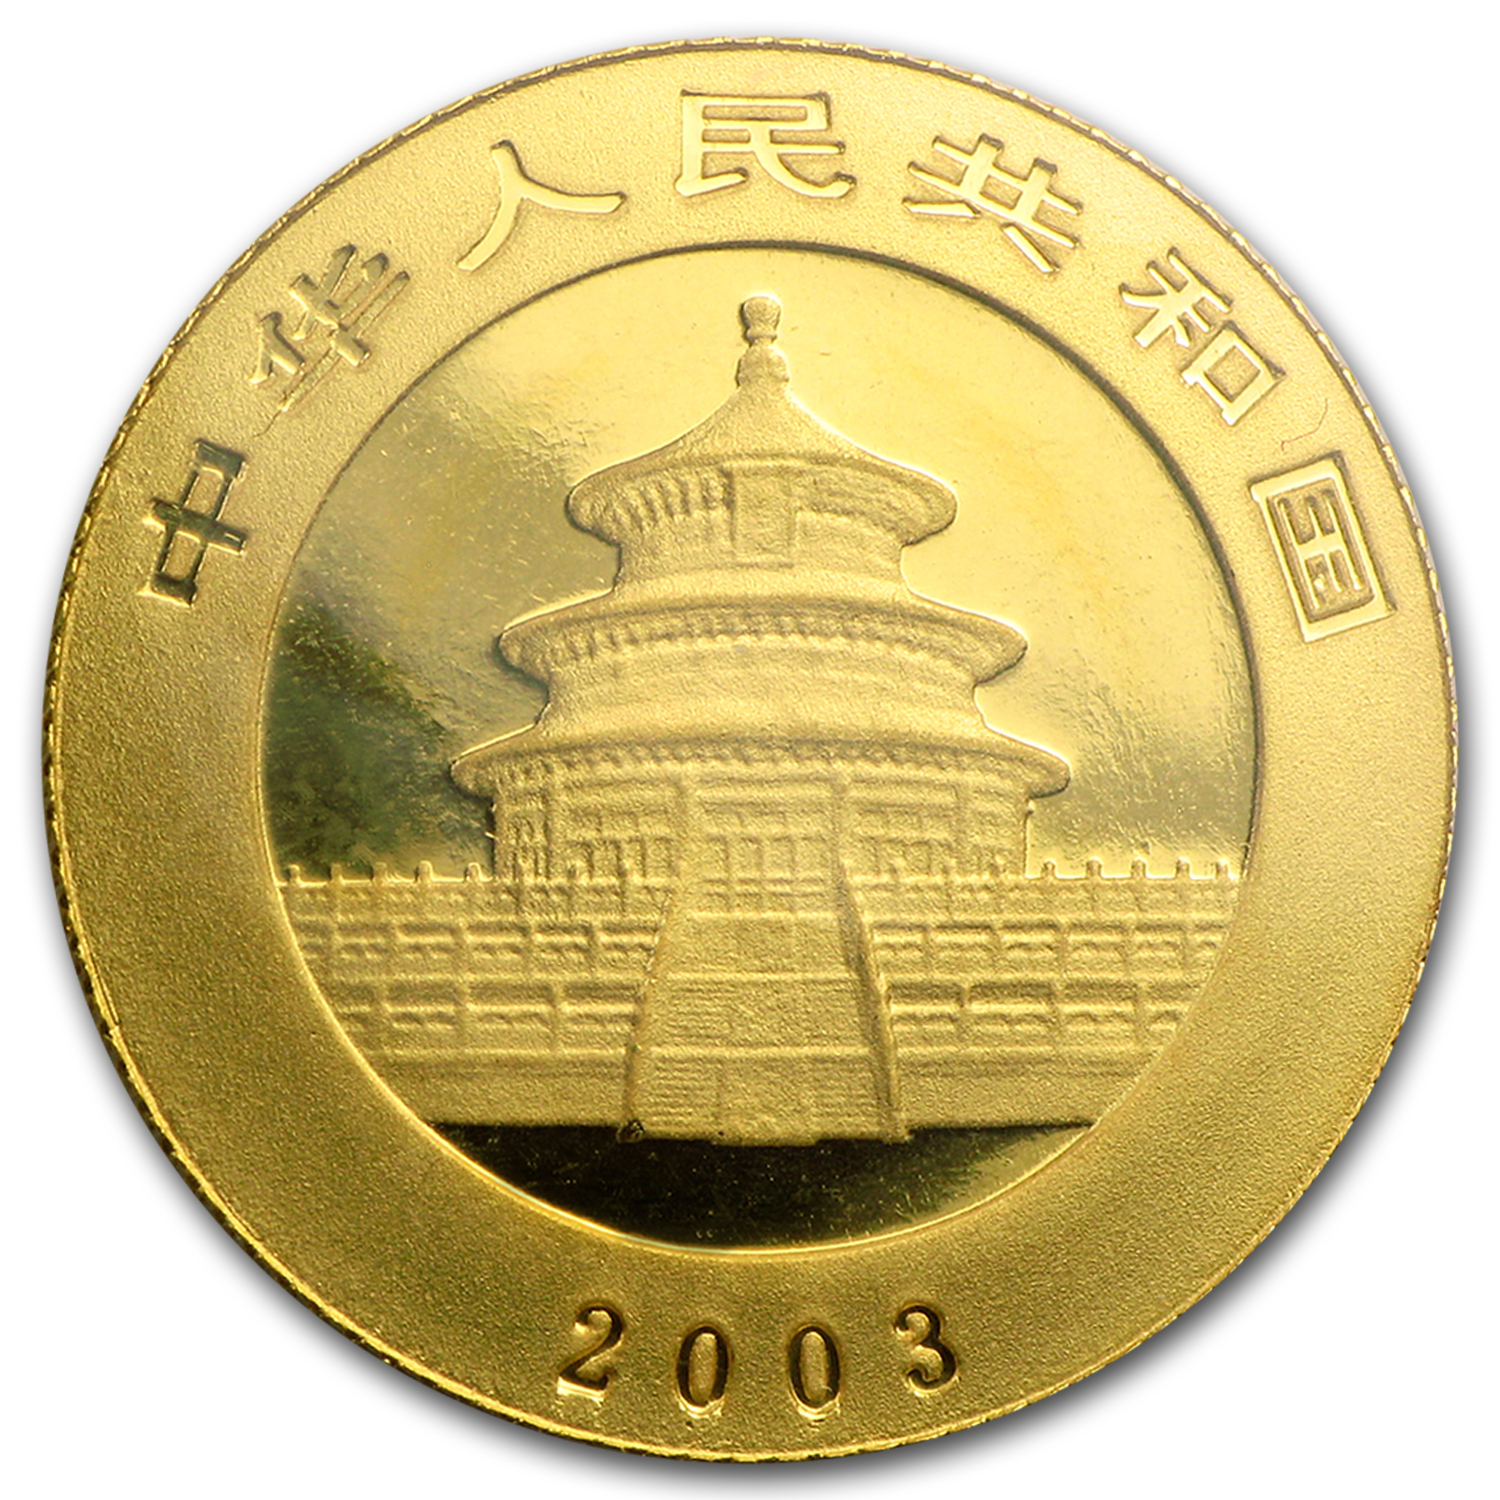 2003 1/10 oz Gold Chinese Panda BU (Sealed)